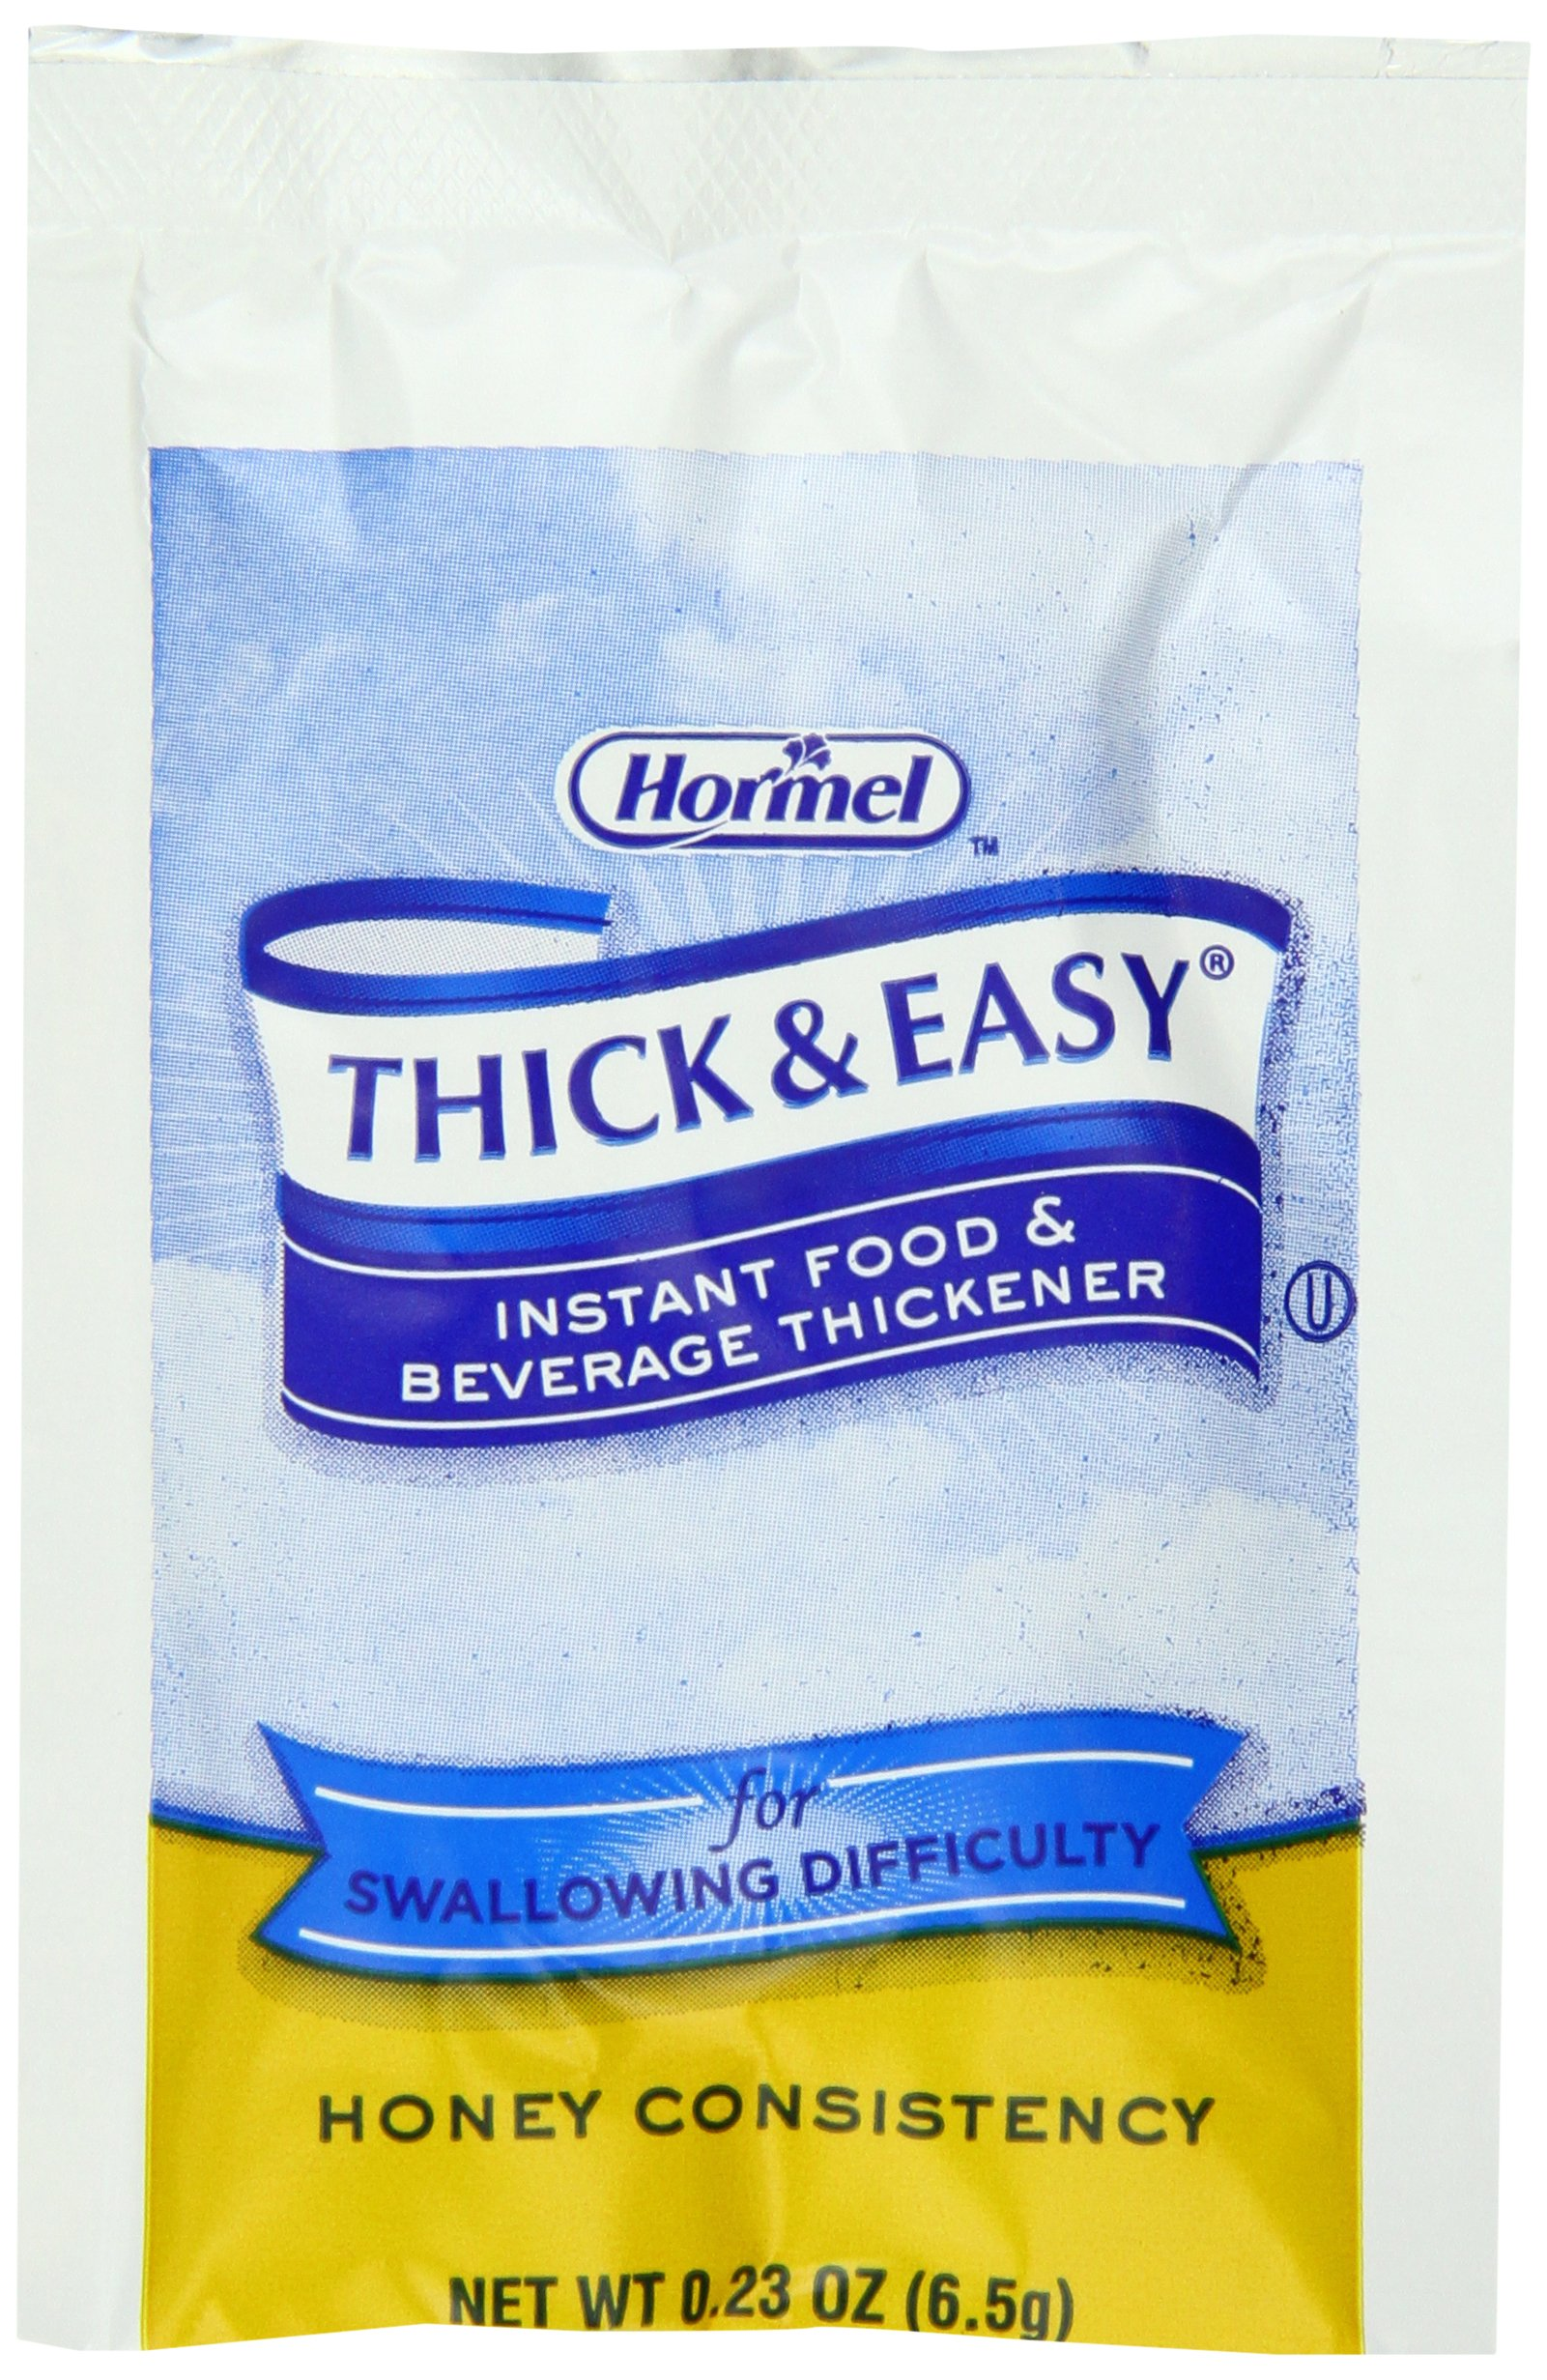 Hormel Thick & Easy, Instant Food Thickener (Honey Consistency), 0.23-Ounce Packets (Pack of 100)